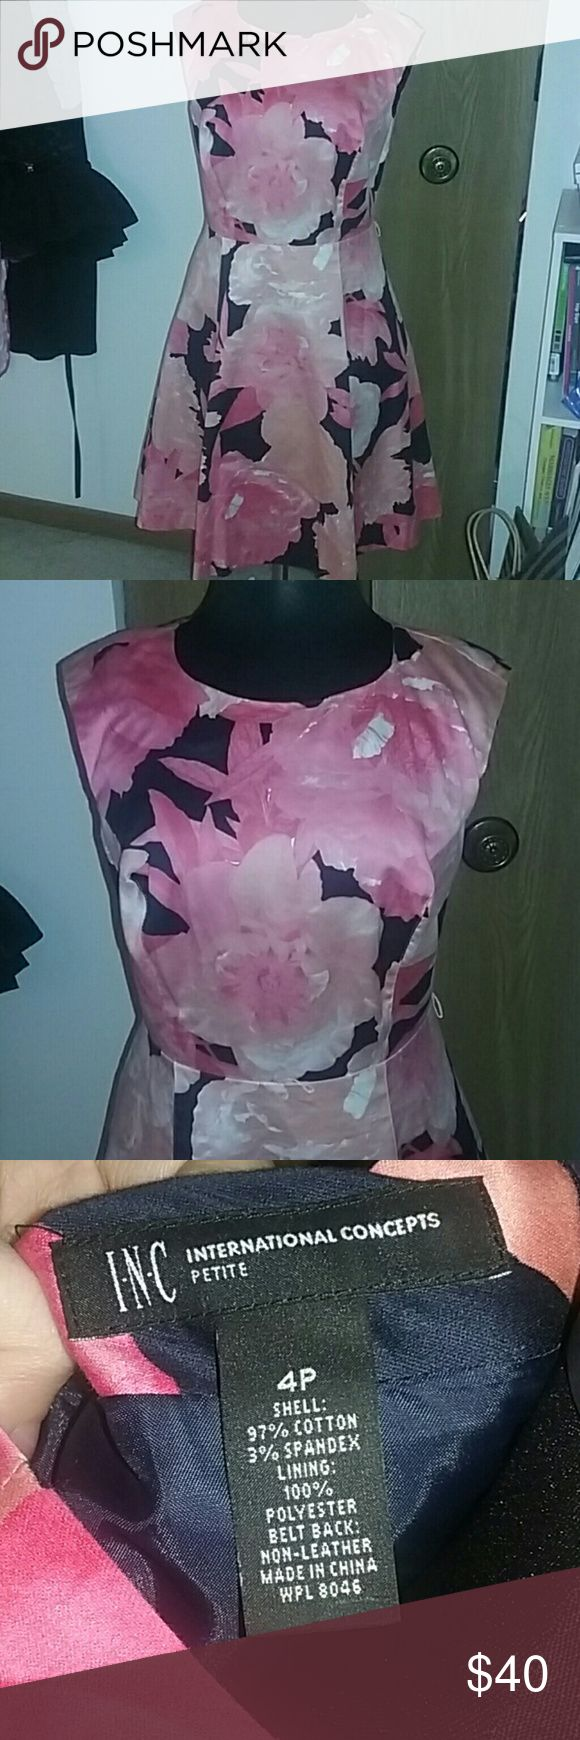 Floral fit and flare dress Inc International Concepts floral fit and flare sleevless dress. Size 4P. Kept in excellent condition. About knee length depending on height. Colors are : pink, orange, coral, white, and navy blue. Dress has two layers, bottom is navy blue, but not visible, only to keep top layer from being see through INC International Concepts Dresses Midi